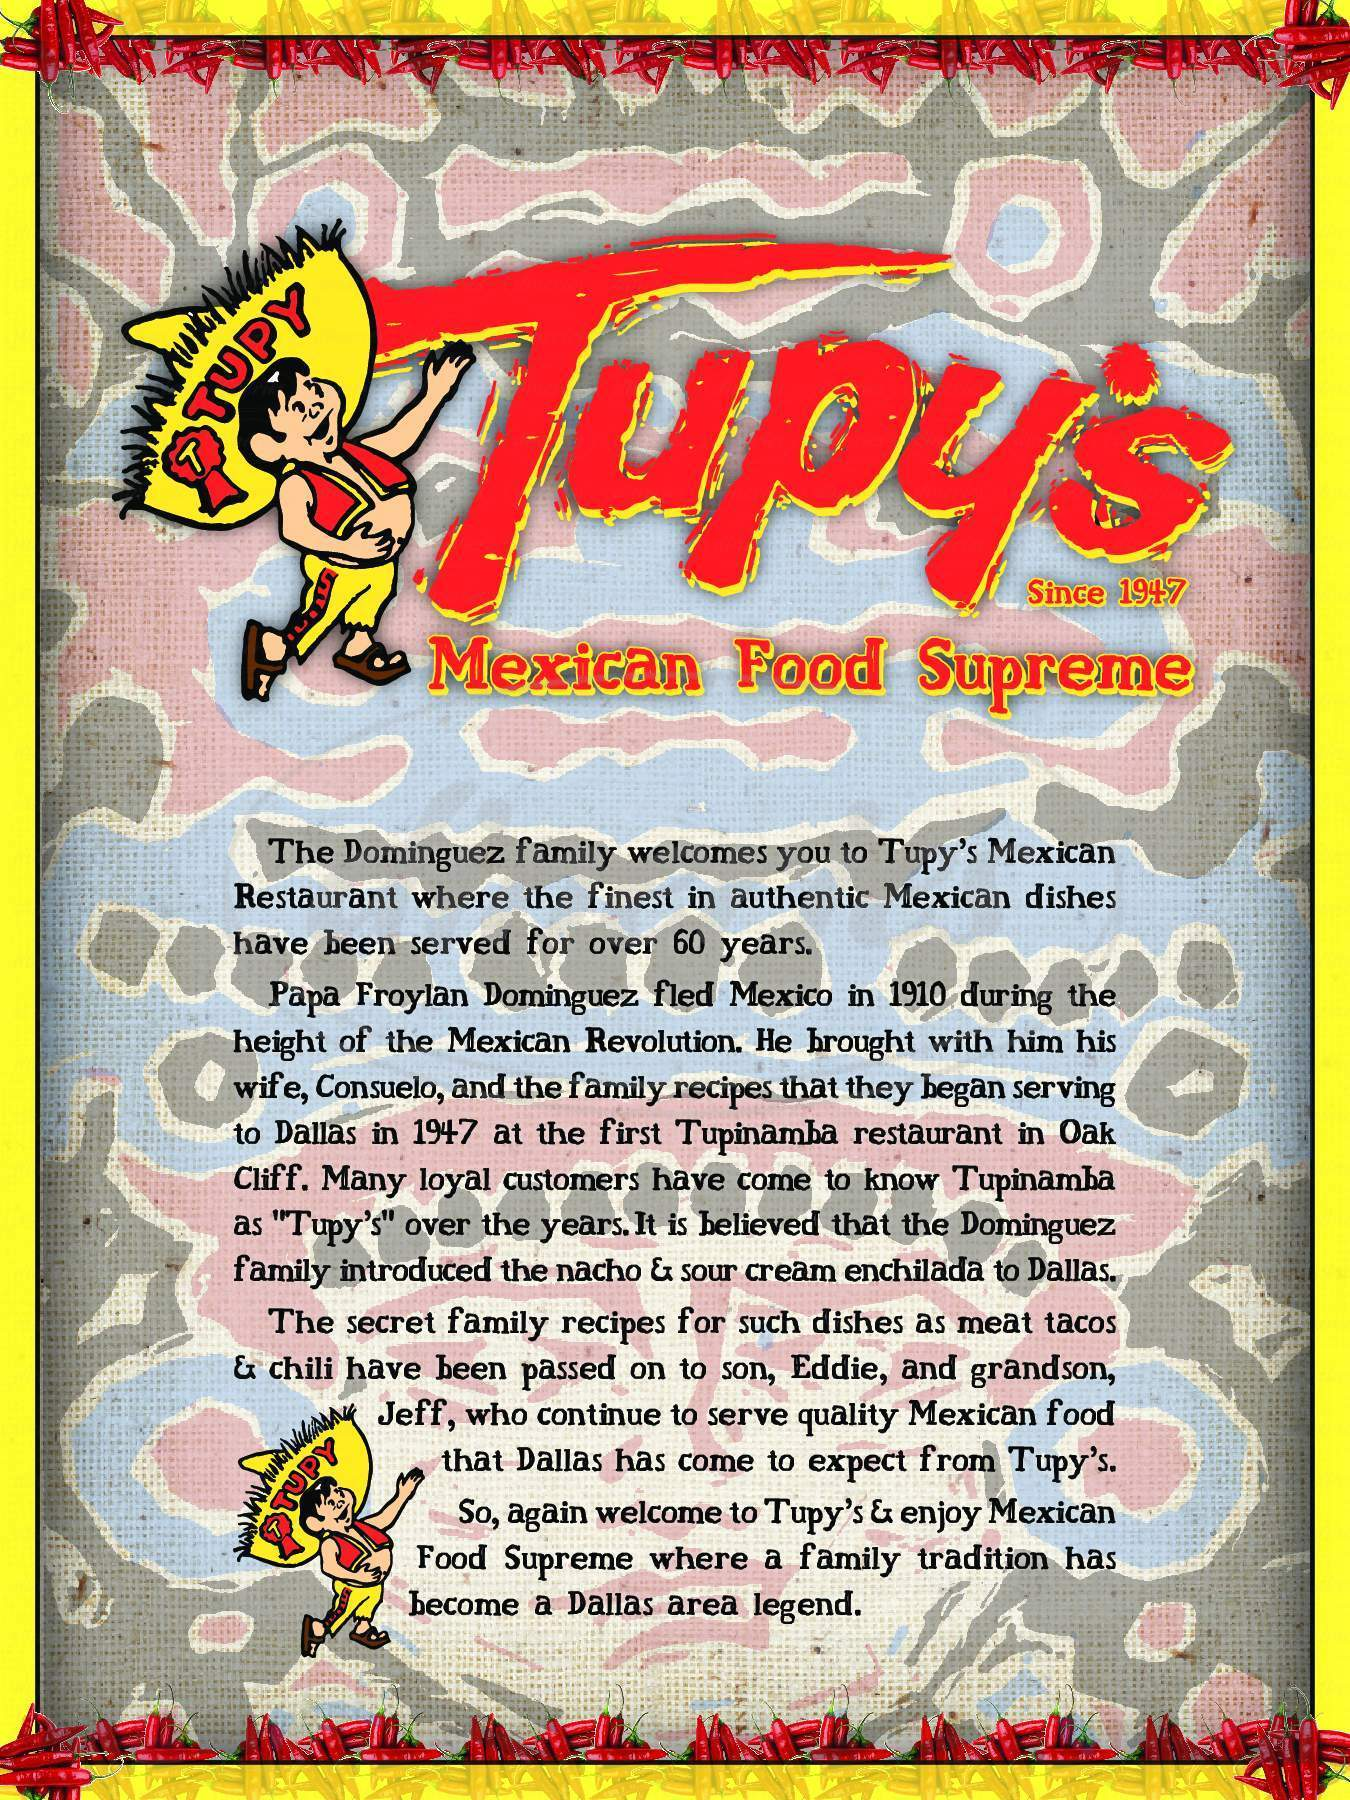 menu for Tupy's Mexician Food Supreme